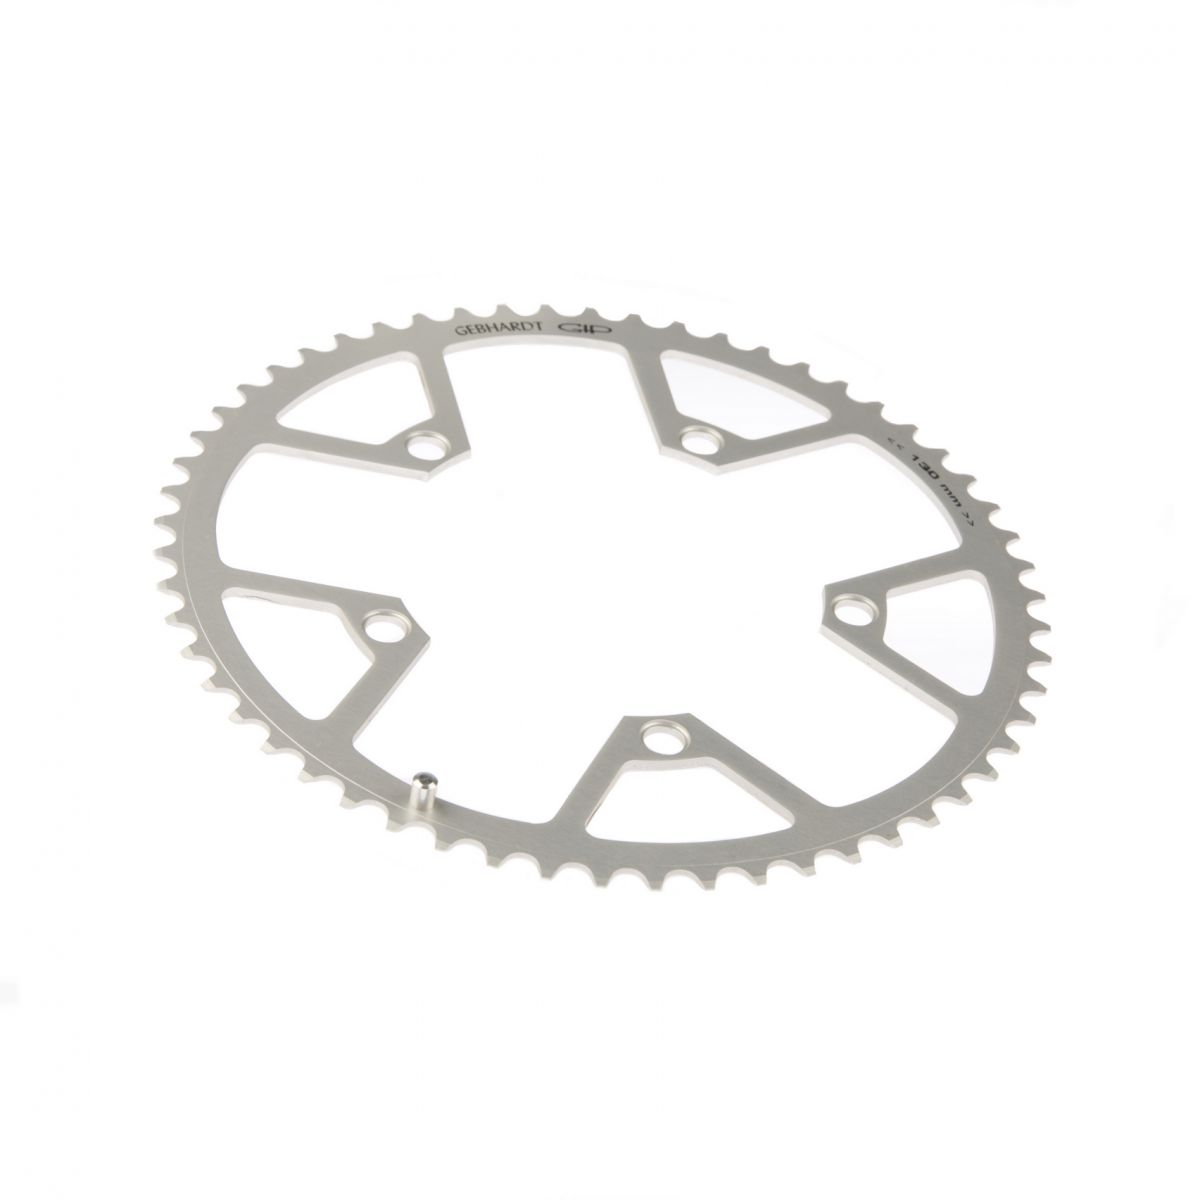 gebhardt chainring classic bcd 130 mm 5hole 52t silver